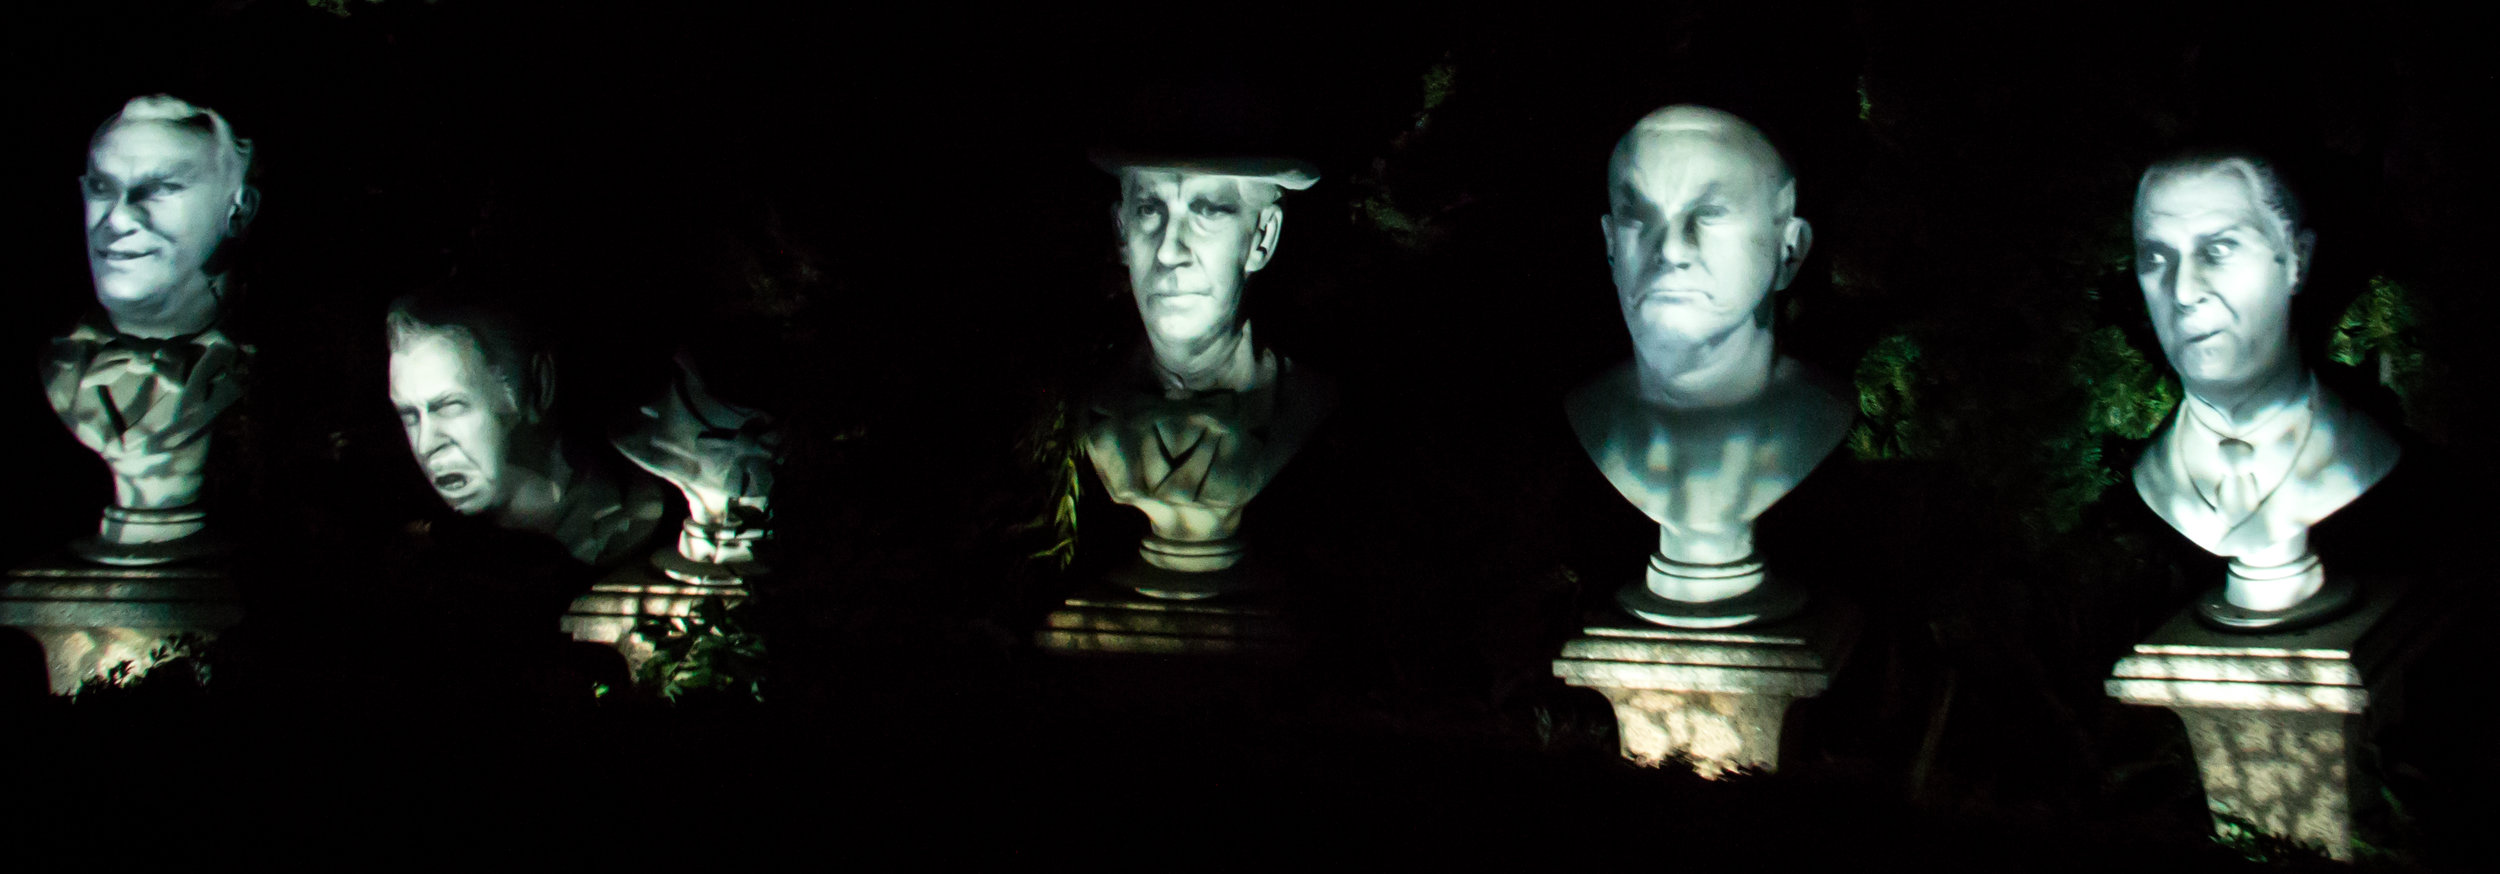 Figure 4: The five singing busts in the graveyard of Disney's Haunted Mansion attraction.